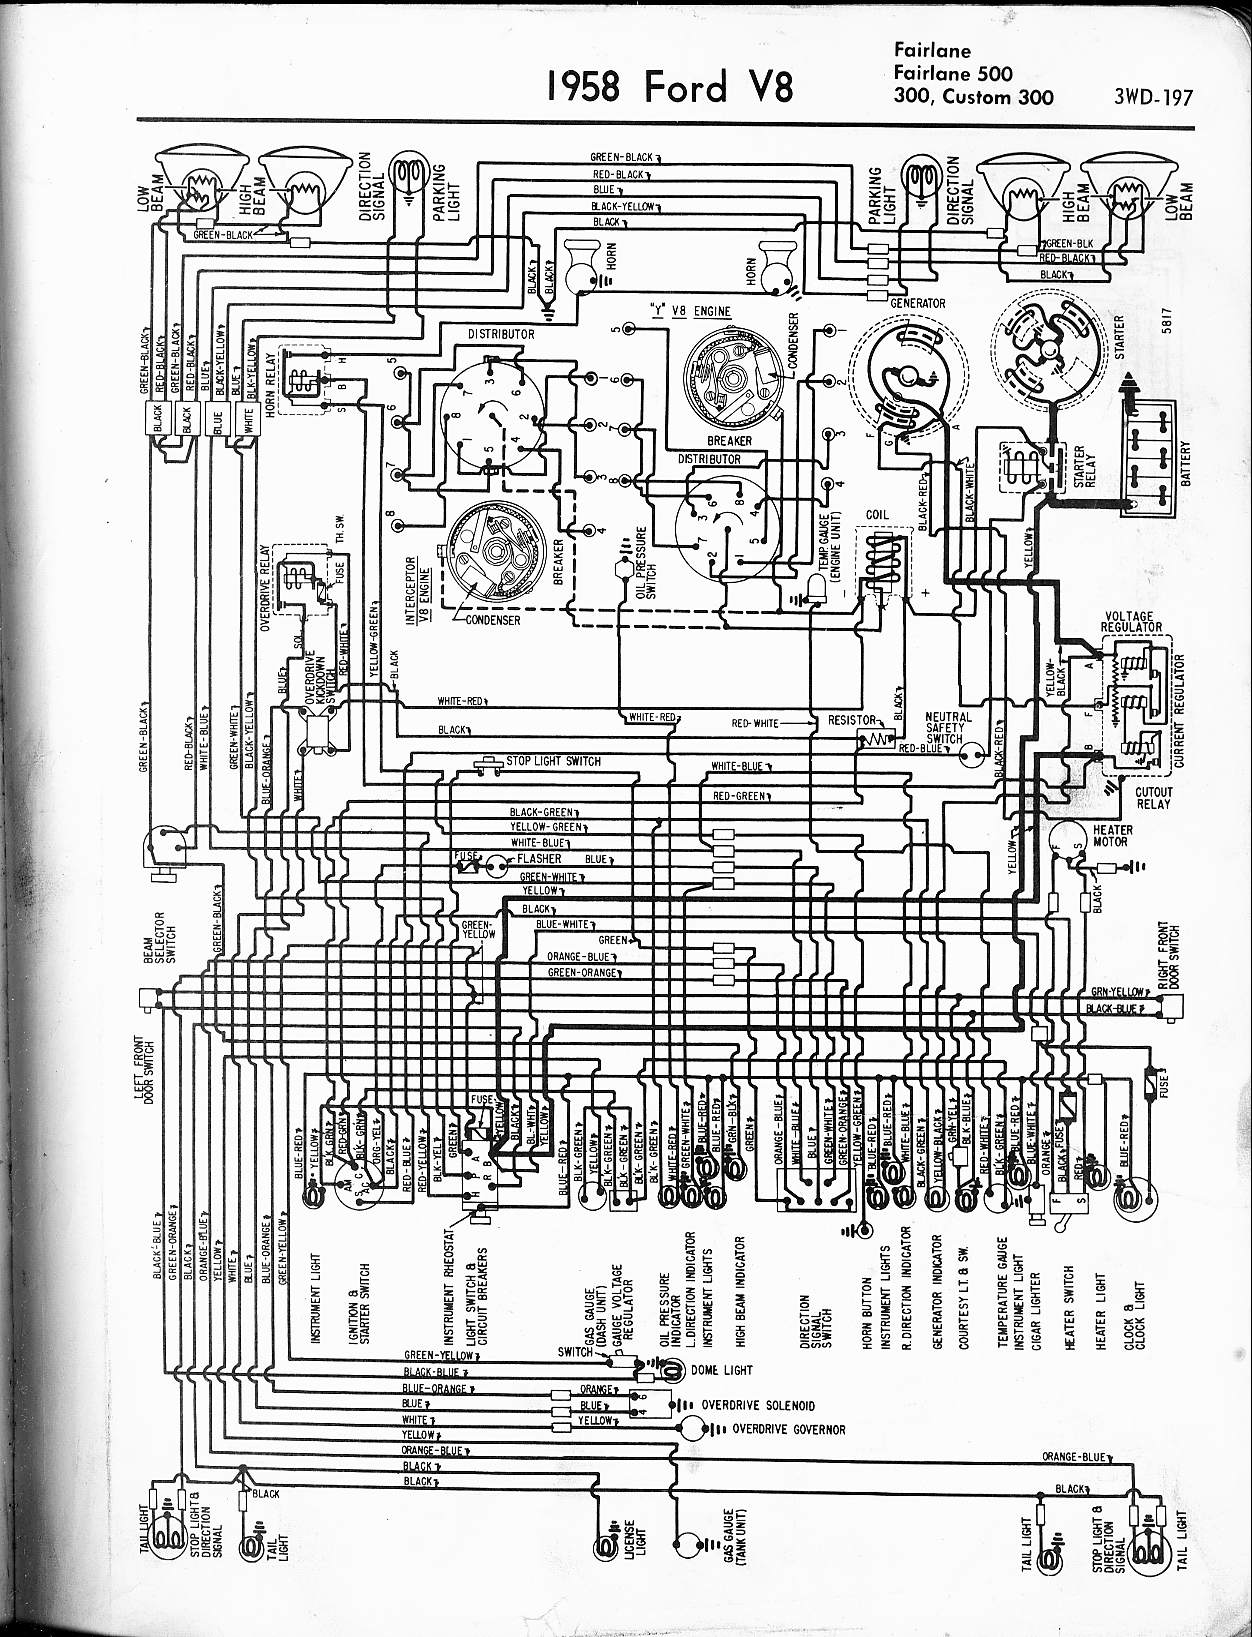 1974 Ford Tractor Wiring Opinions About Diagram 3000 Harness 1957 Schematics Rh Mychampagnedaze Com 2000 Need Wieing For4610